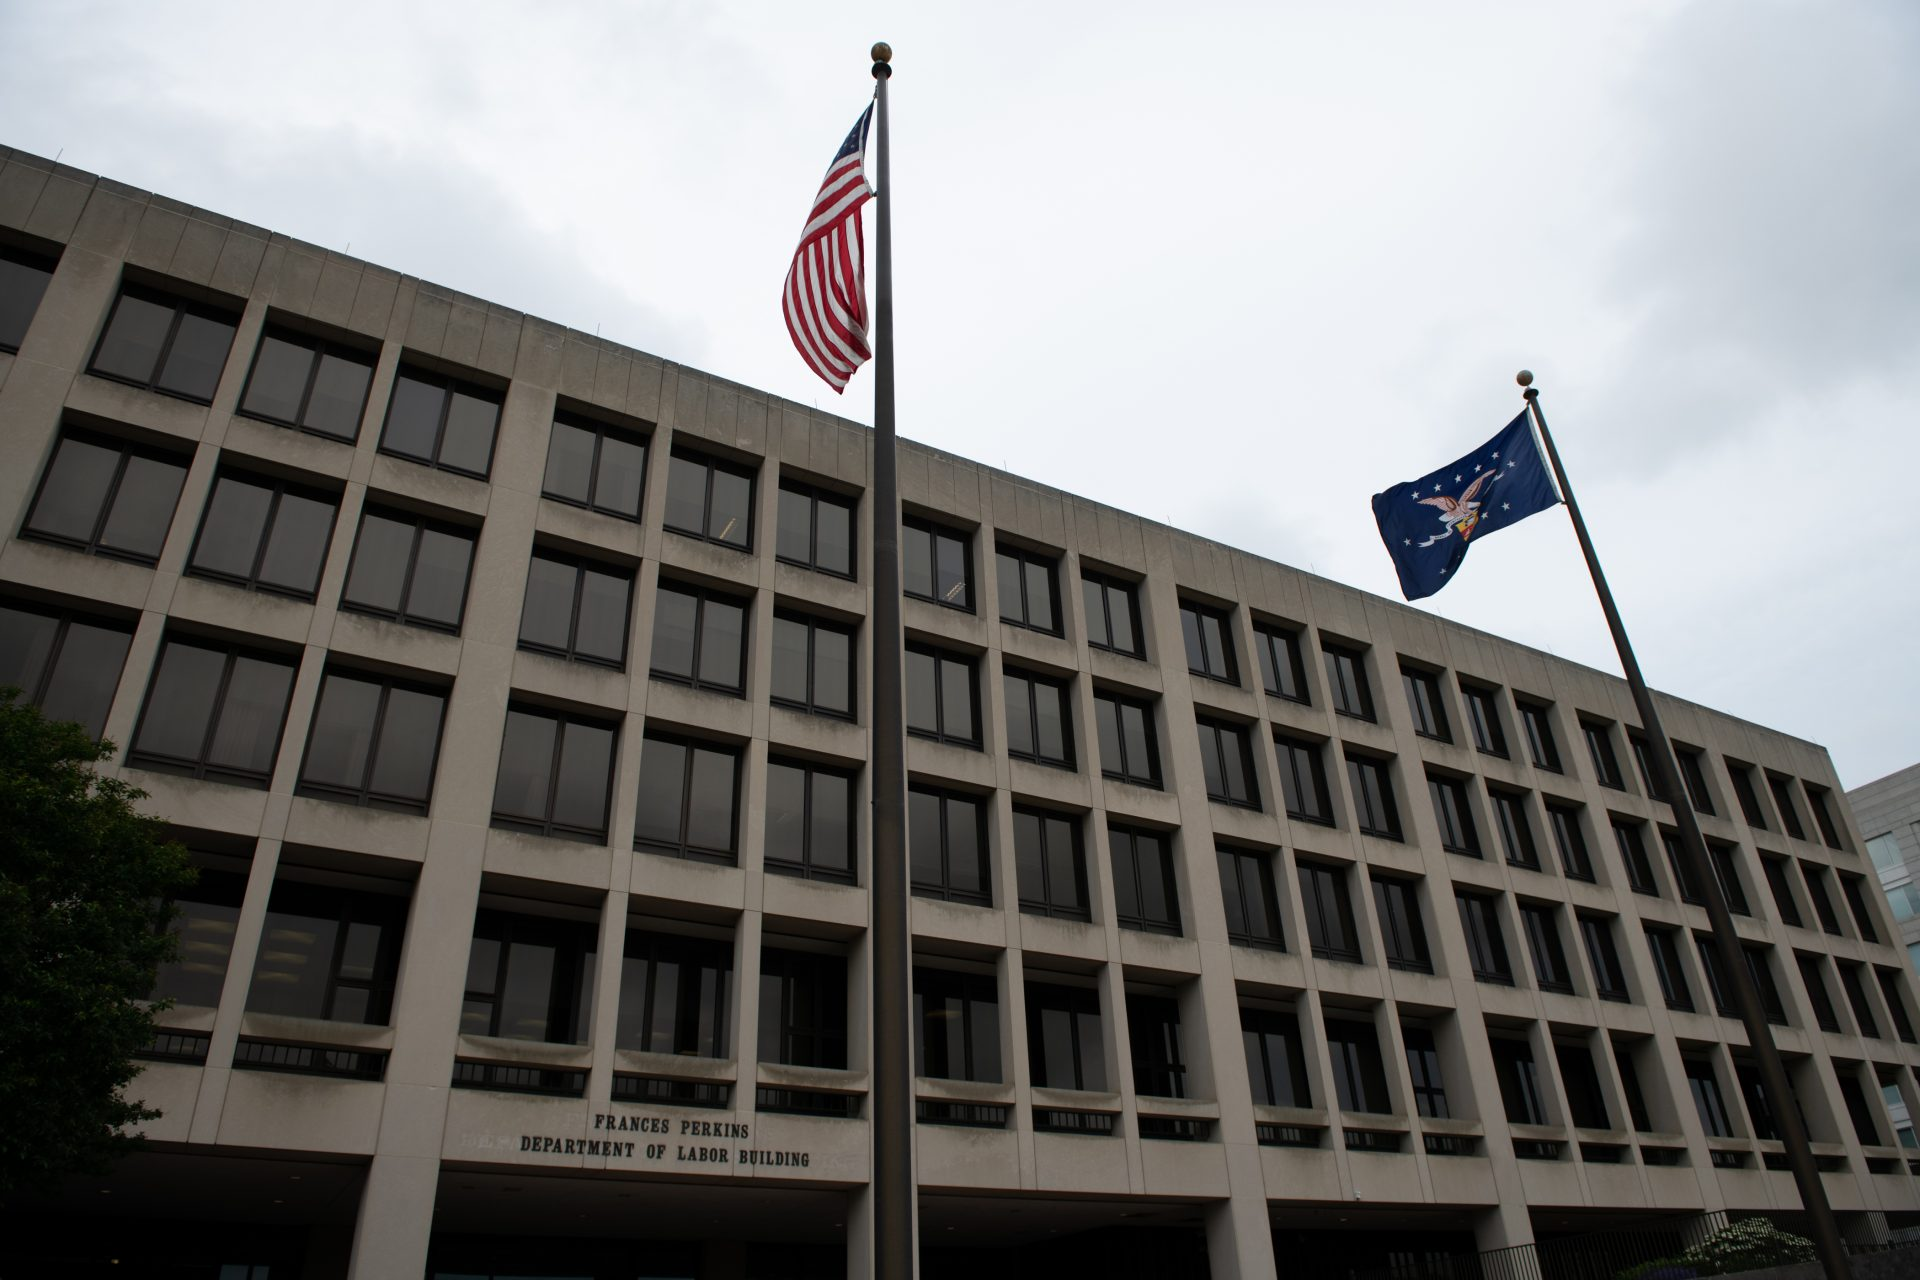 A general view of the U.S. Department of Labor in Washington, D.C., on May 28, 2020 amid the Coronavirus pandemic. This week marked 100,000 confirmed COVID-19 deaths in the United States, as outbreaks accelerated in more than a dozen states and many countries across the global south according to reports. (Graeme Sloan/Sipa USA)No Use UK. No Use Germany.